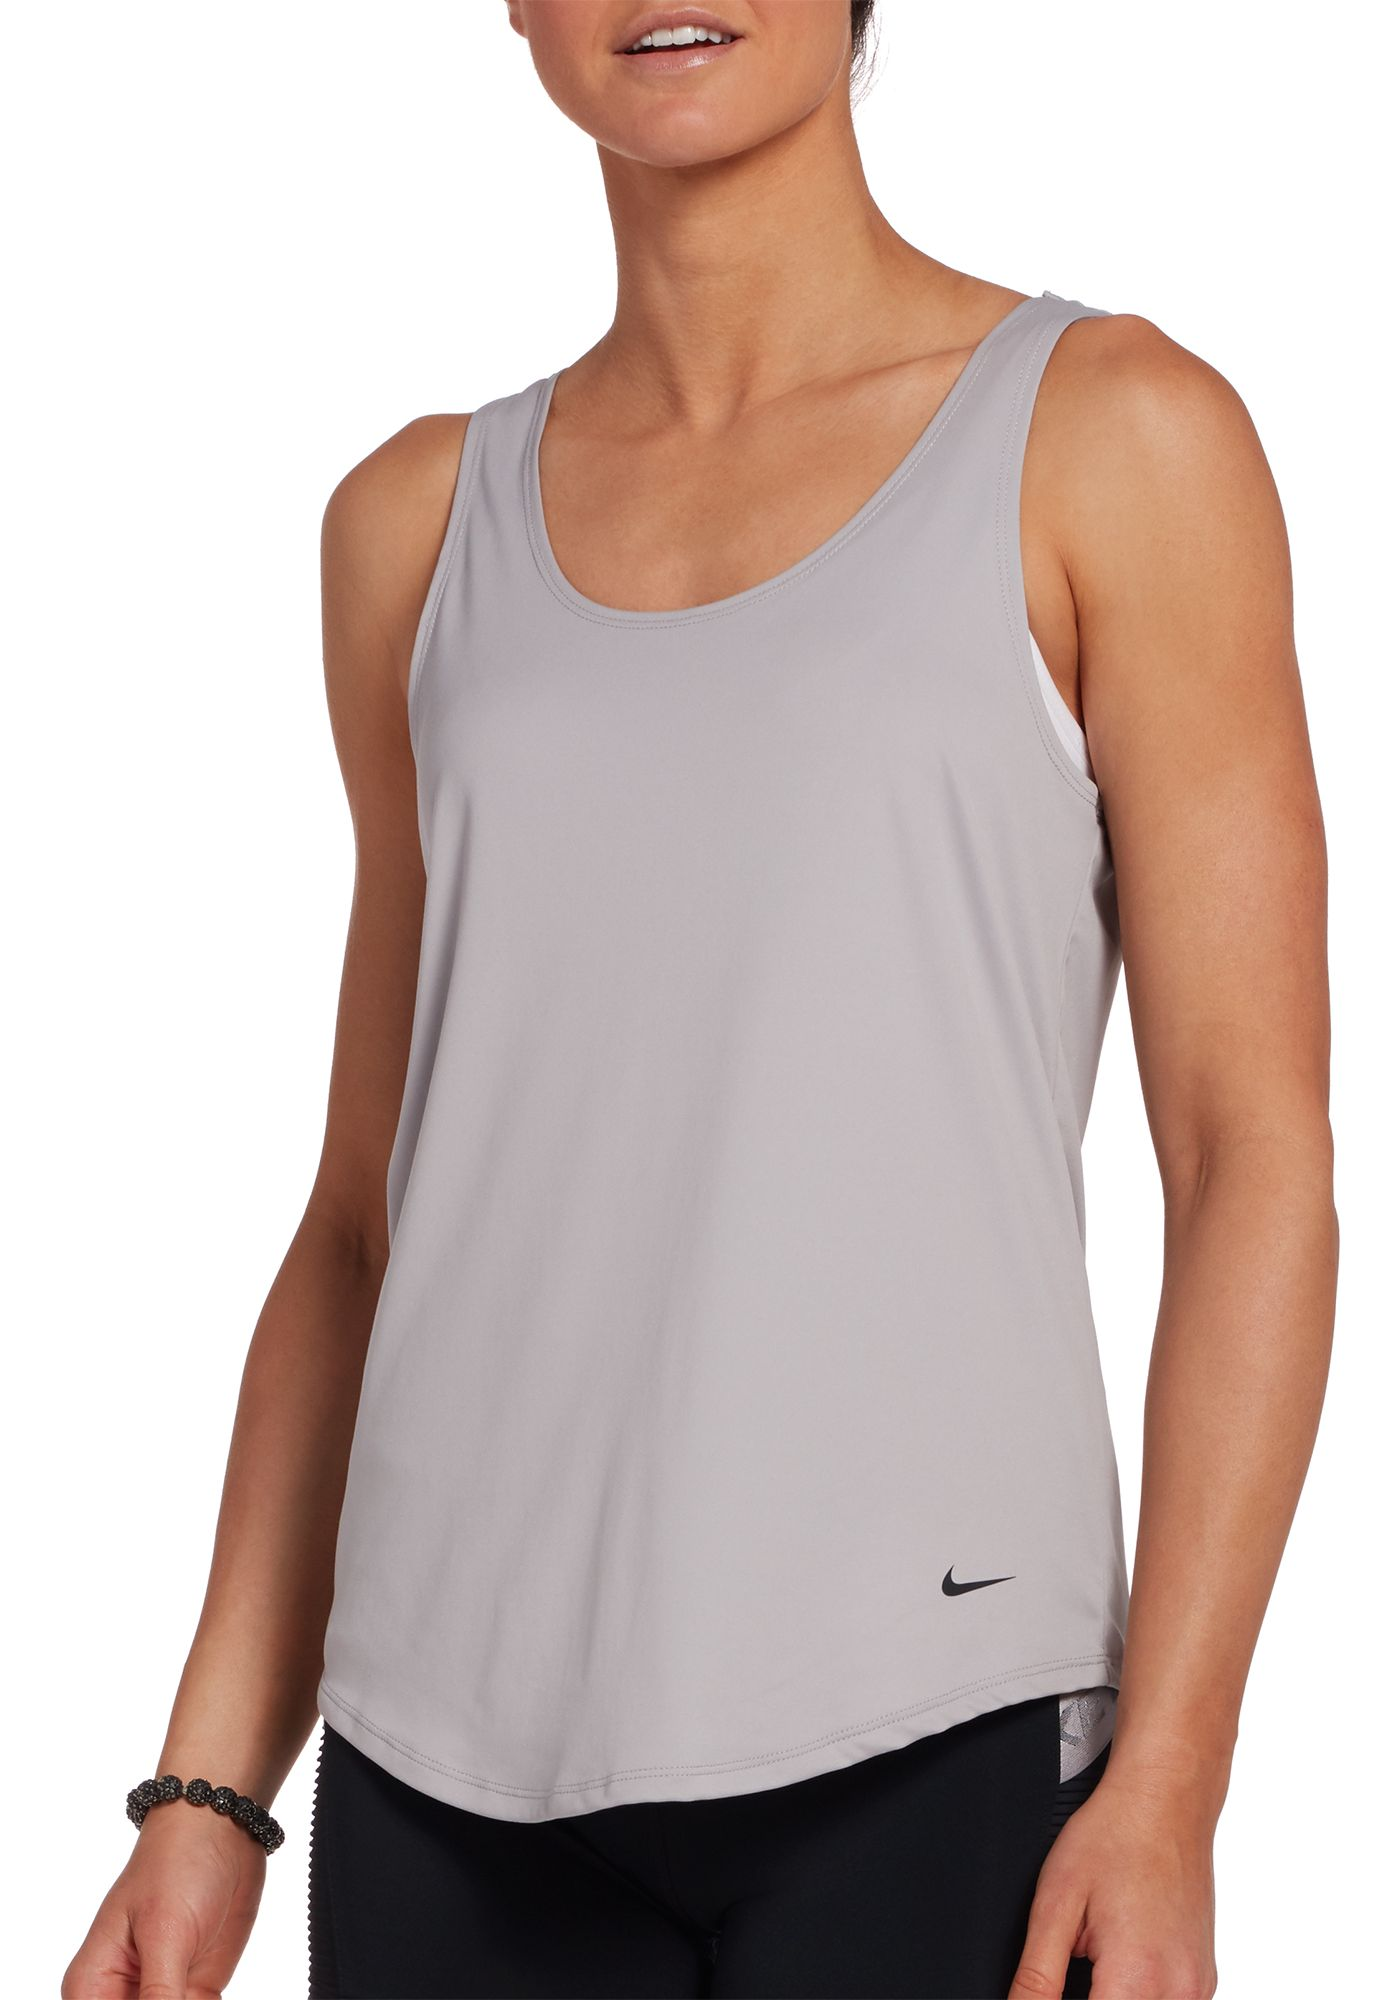 Nike Women's Dri-FIT Elastika Double Strap Training Tank